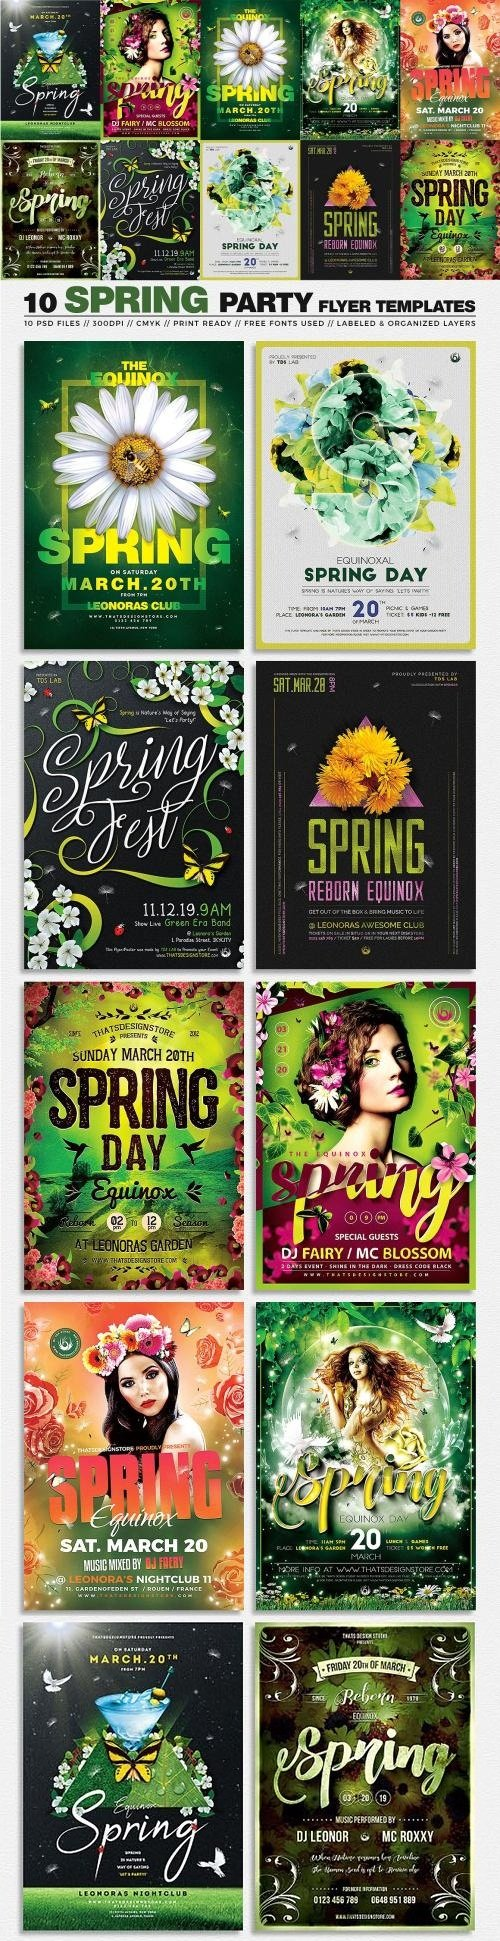 10 Spring Party Flyer Bundle - 3441084